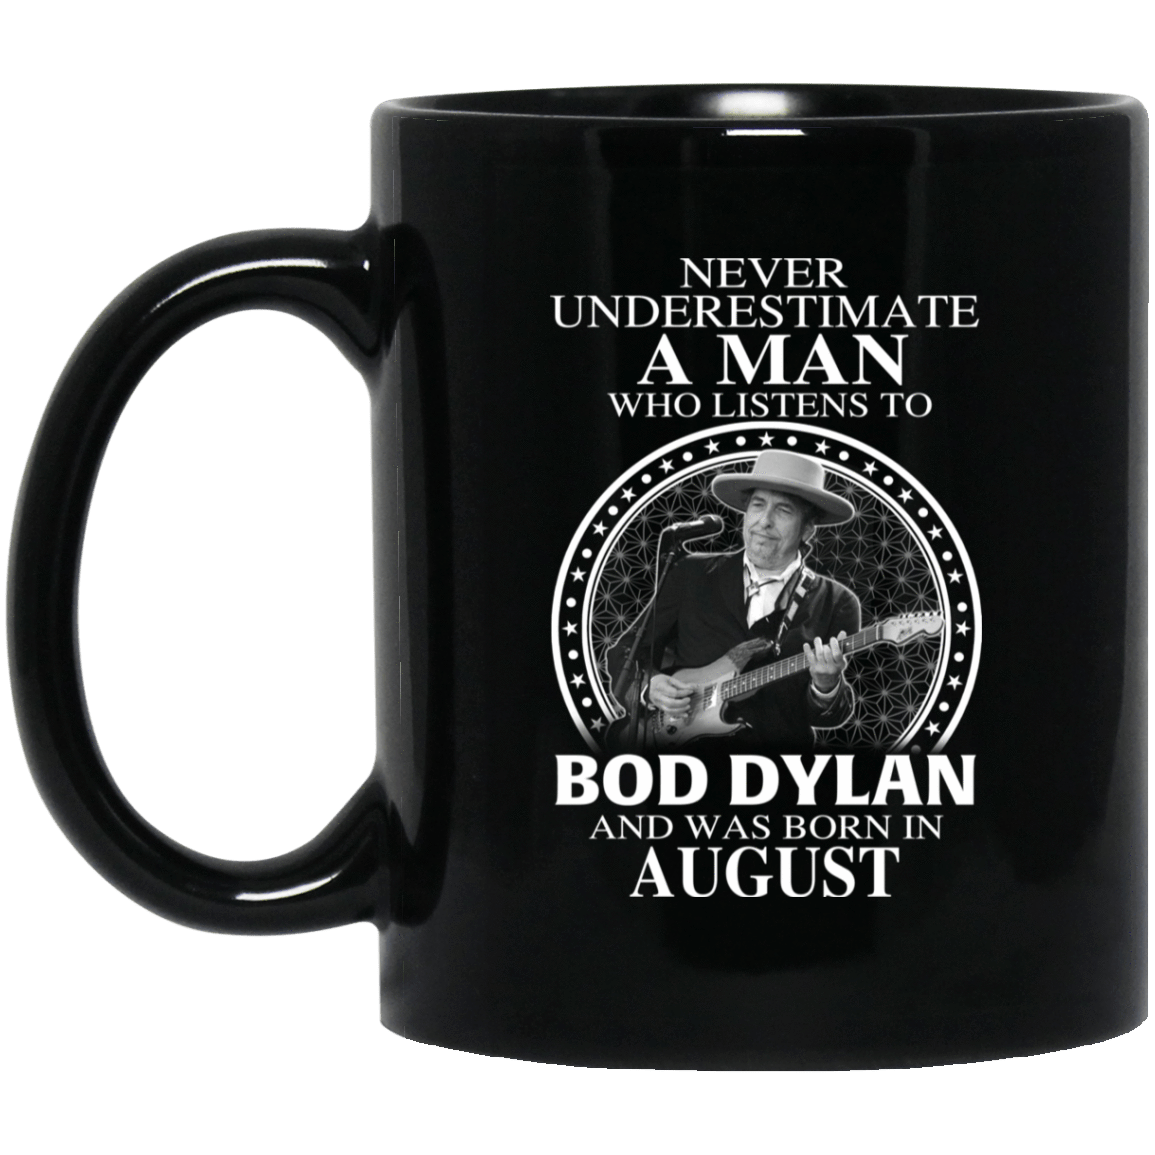 A Man Who Listens To Bob Dylan And Was Born In August Mug 1065-10181-76154703-49307 - Tee Ript